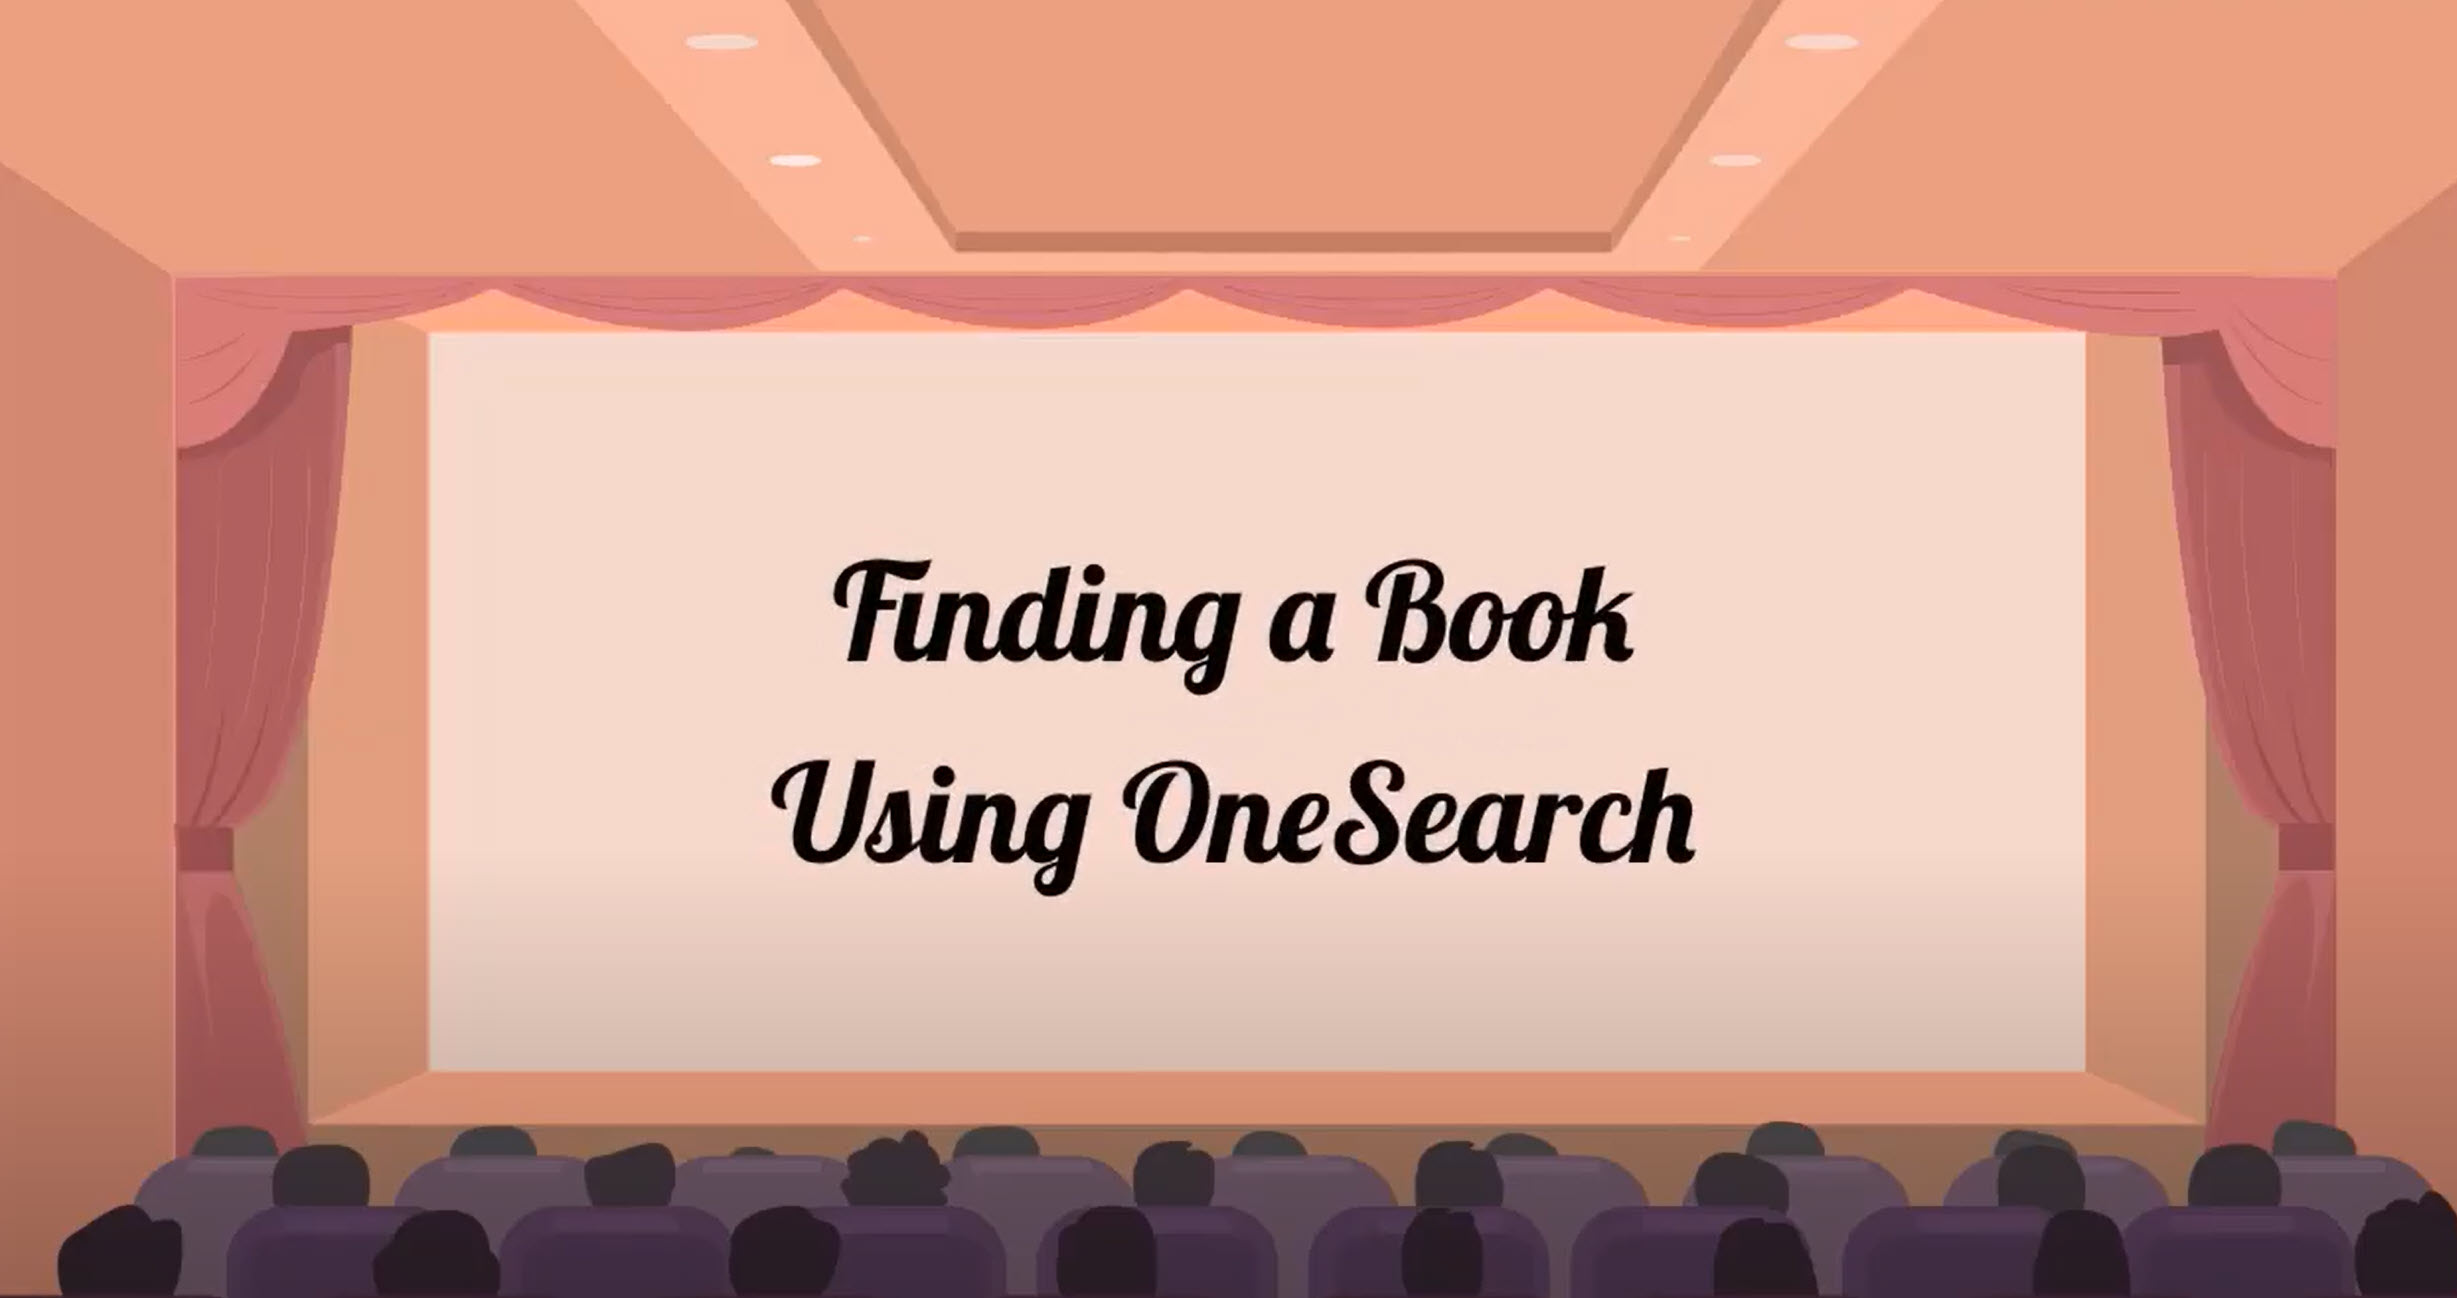 Image of the Finding a Book Using One Search Video with link to video when clicked